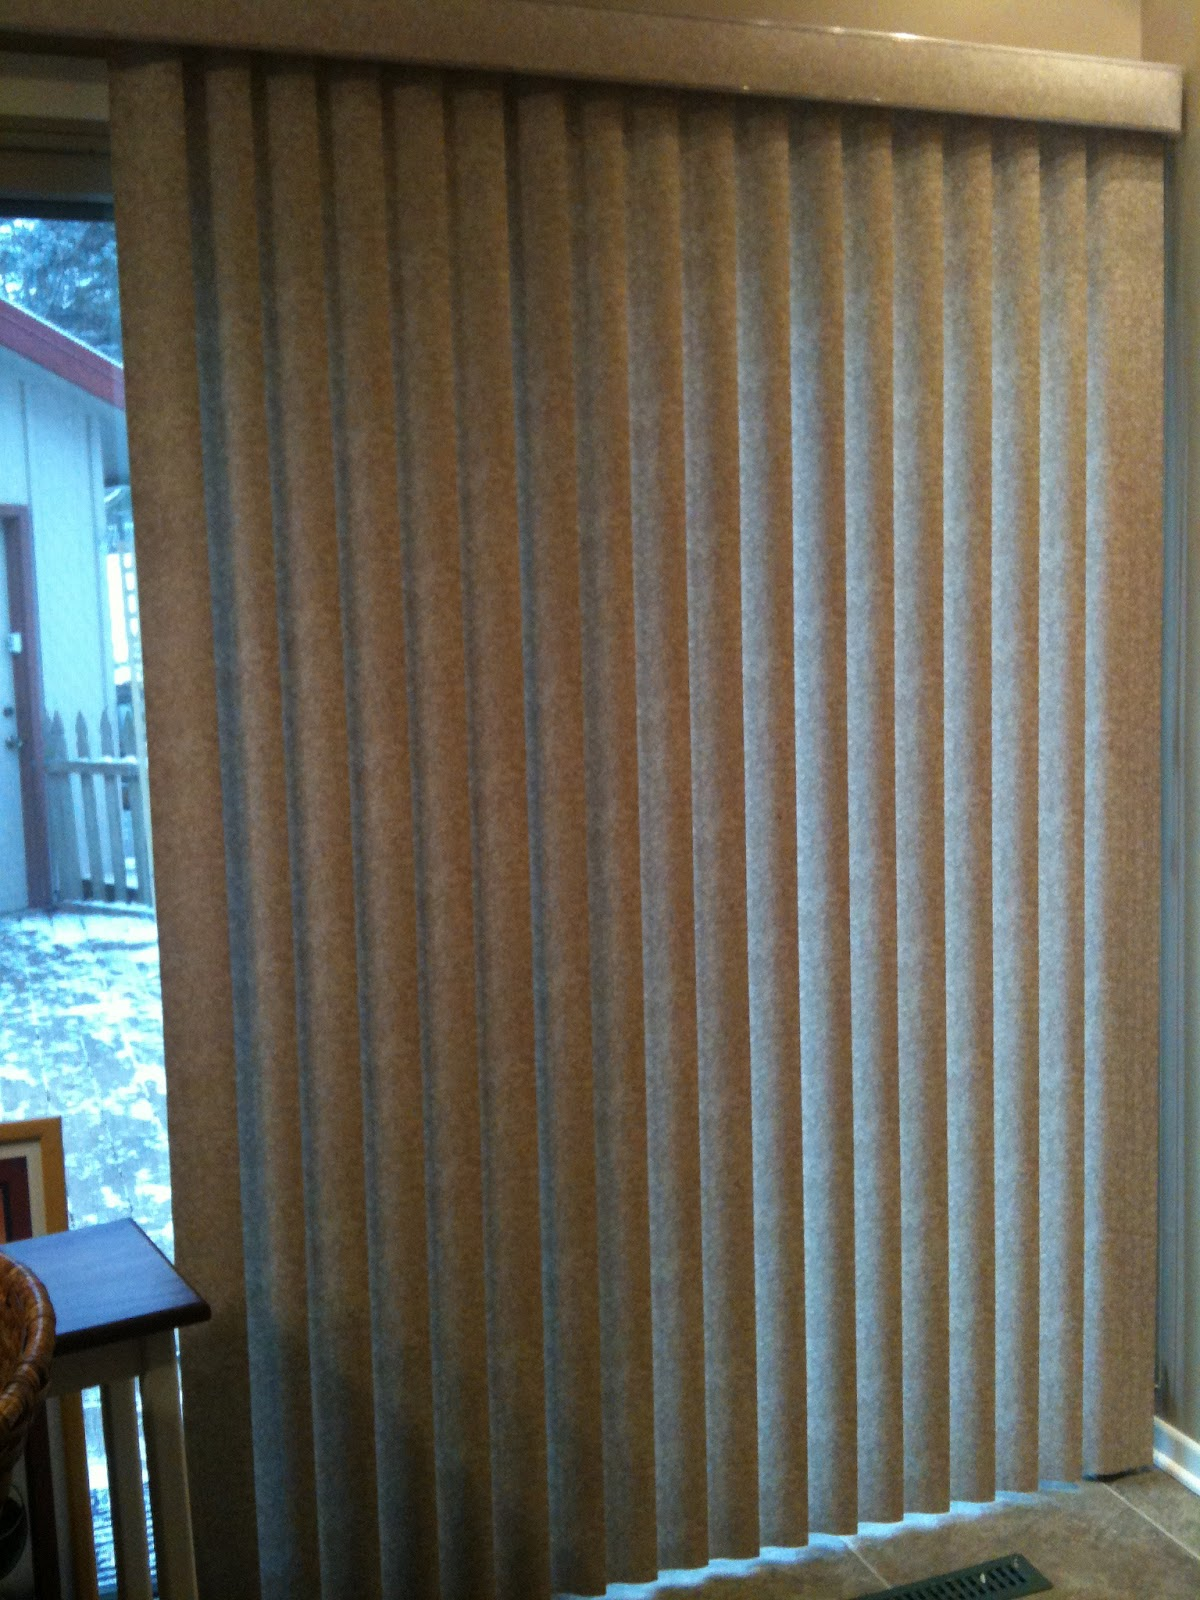 Widow writes can one paint hunter douglas vertical blinds motel 6 blinds before painting solutioingenieria Images